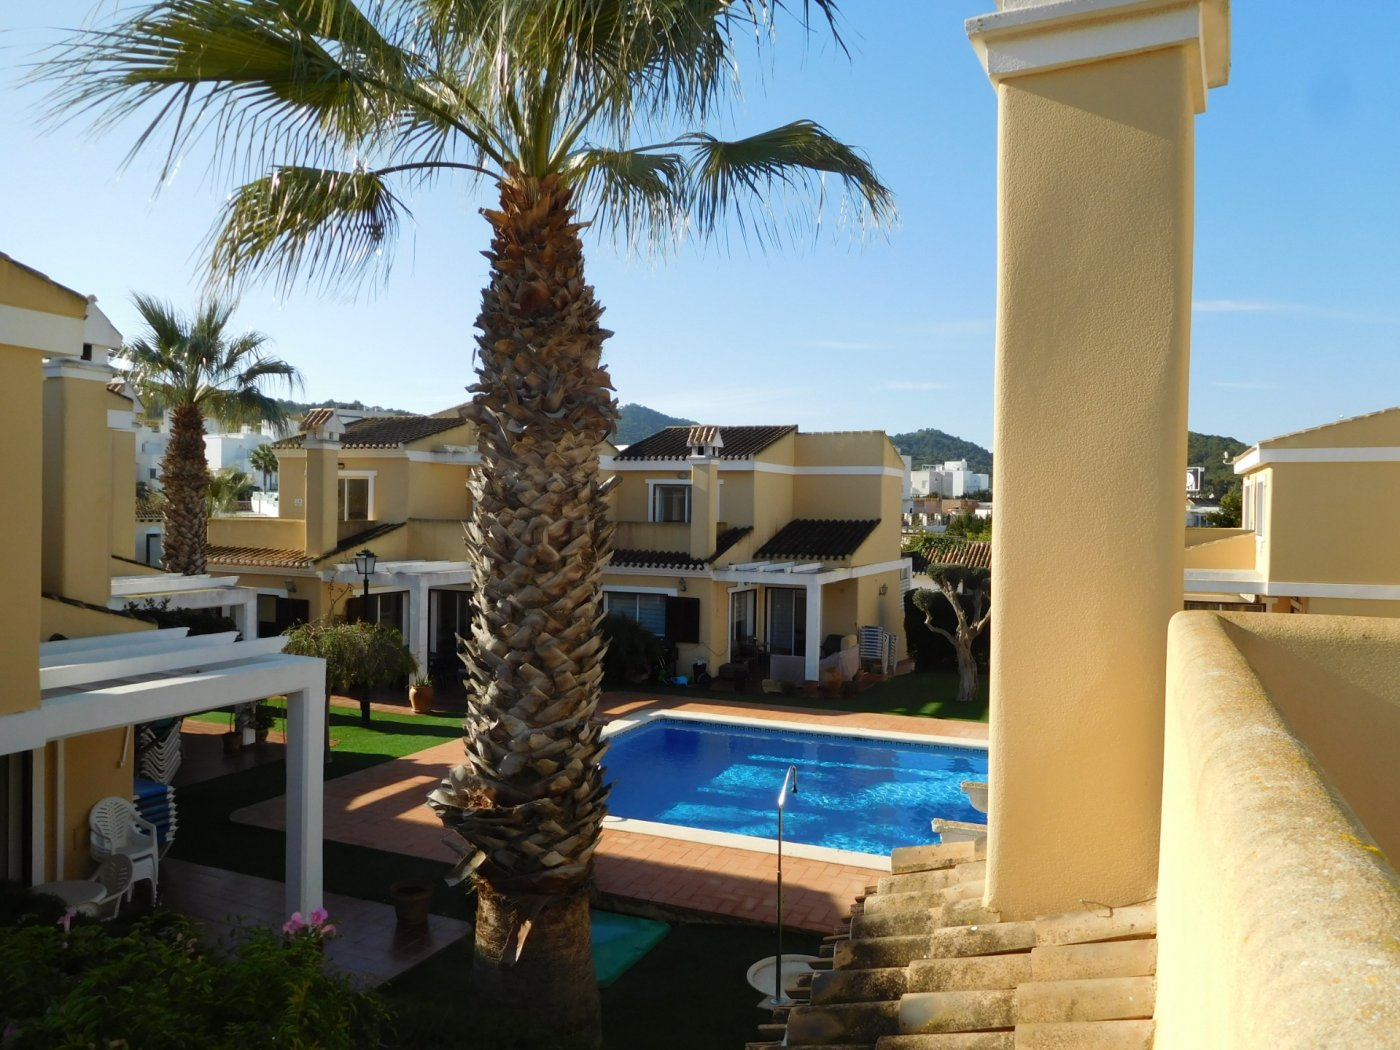 Gallery Image 36 of Casa For rent in Los Naranjos, La Manga Club With Pool